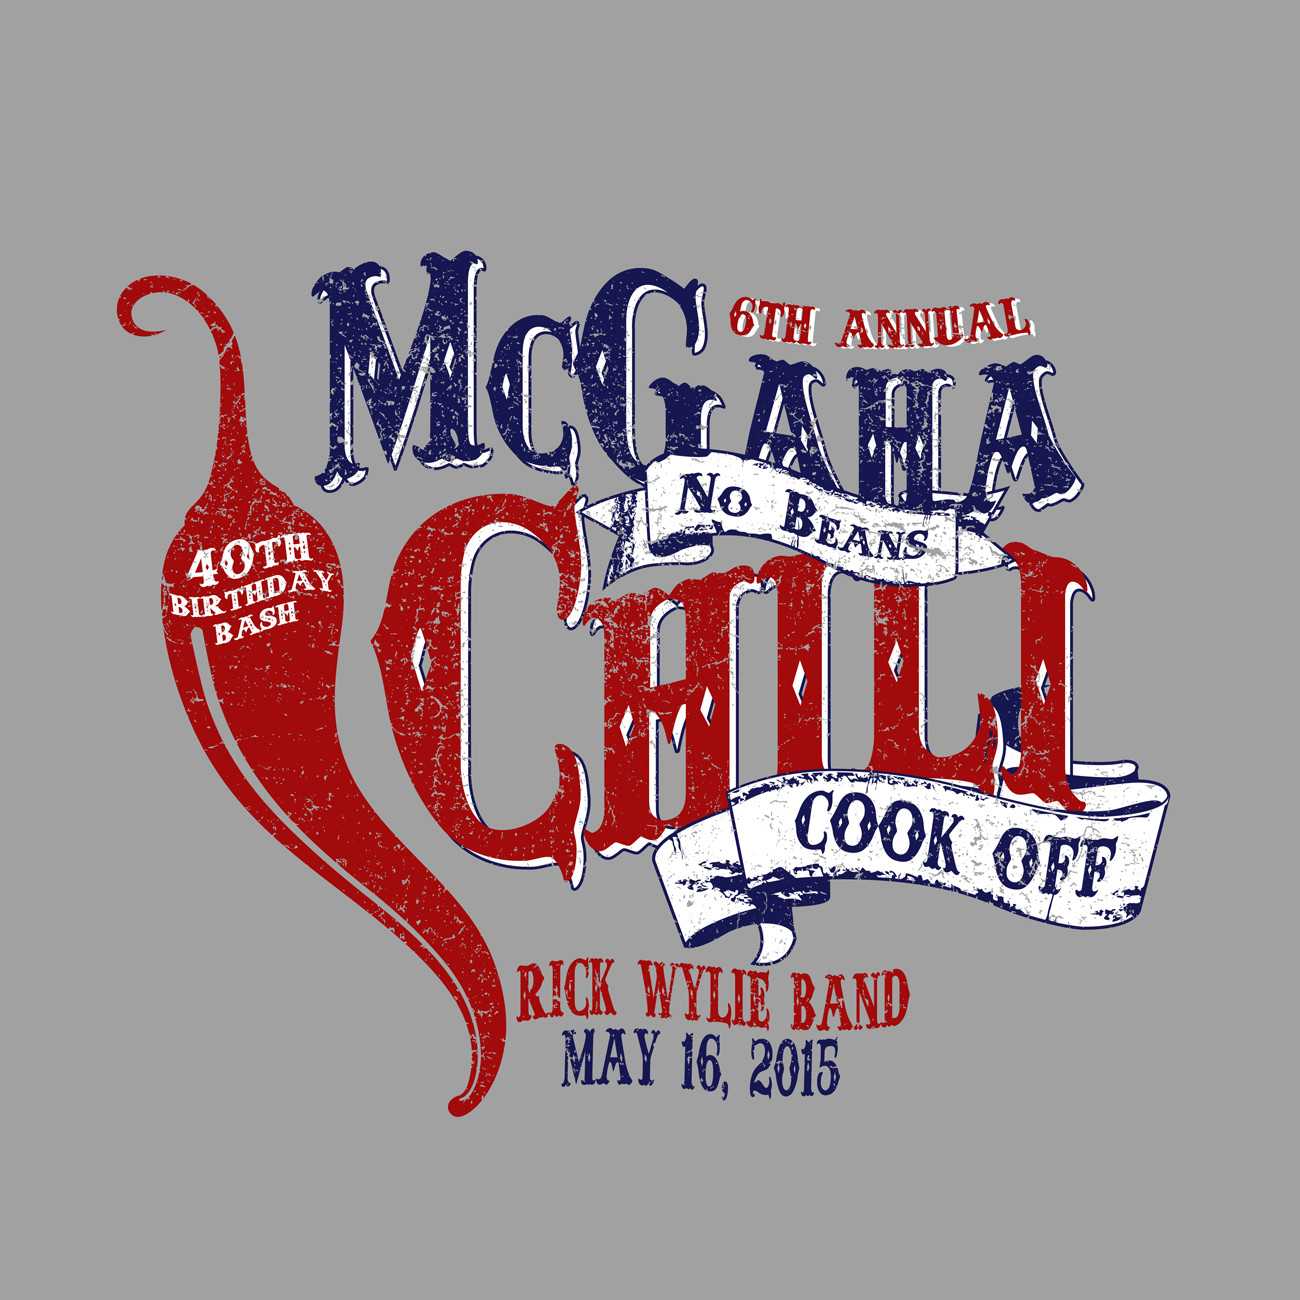 McGaha Chili Cookoff Tshirt Design